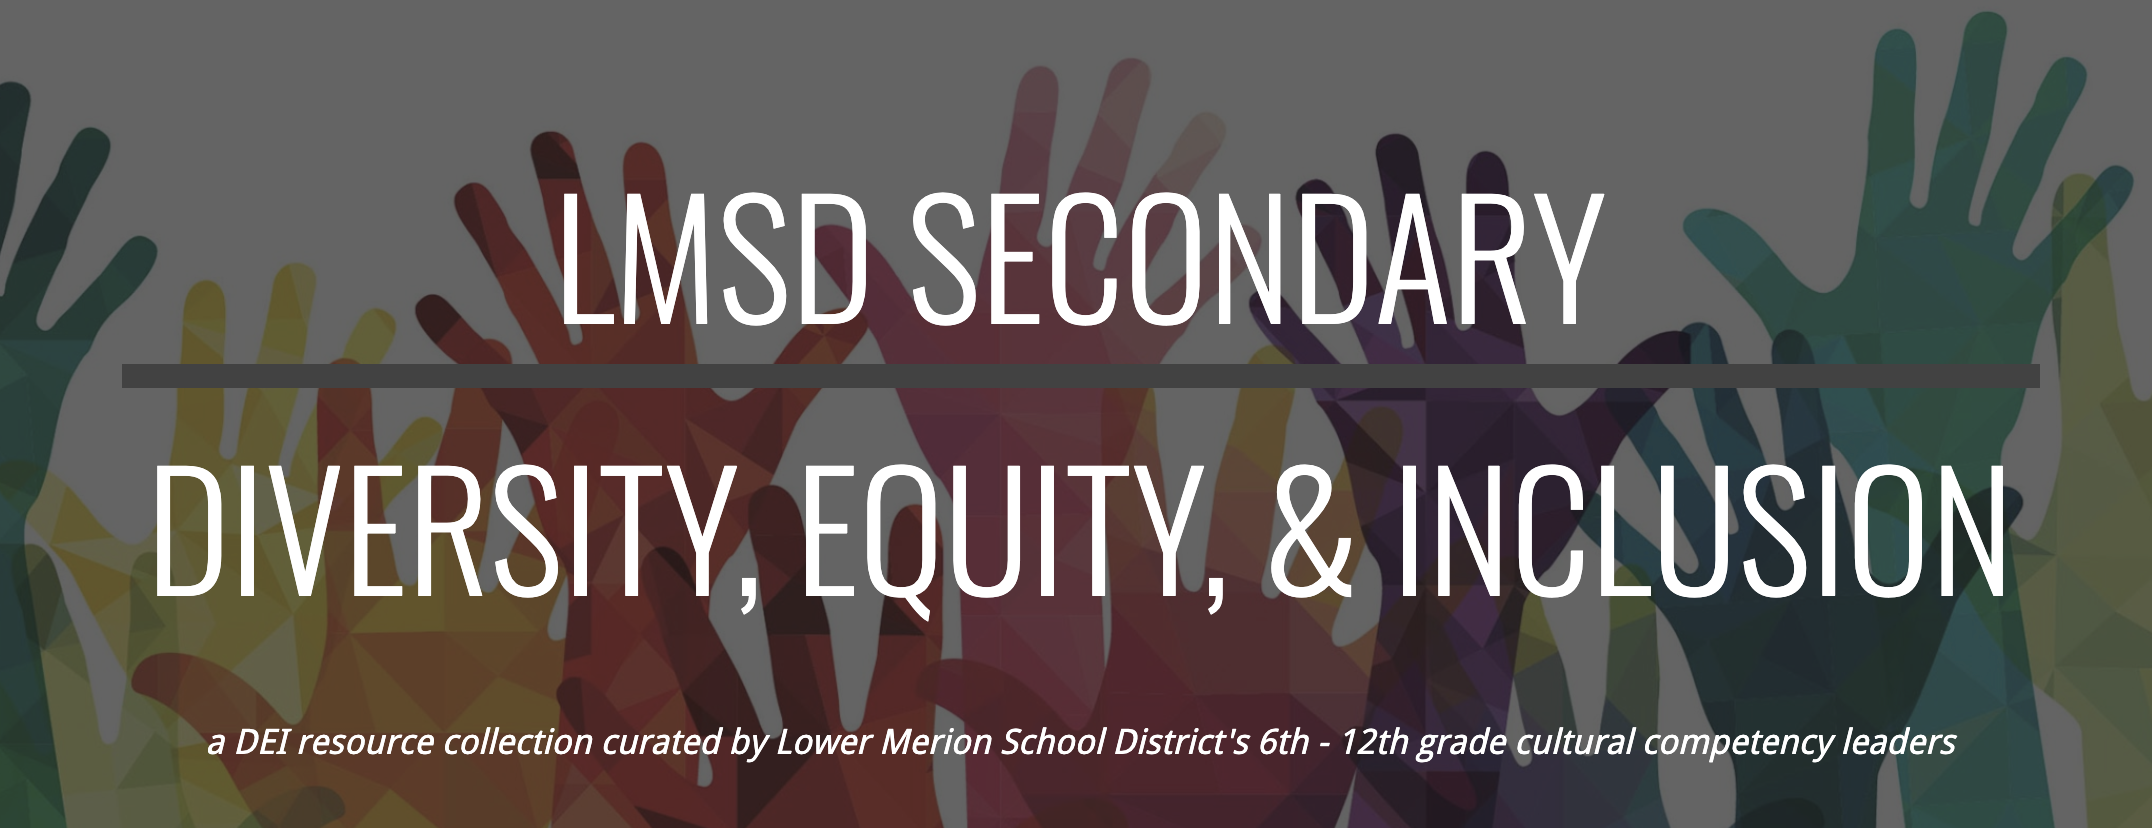 LMSD Secondary Diversity, Equity & Inclusion